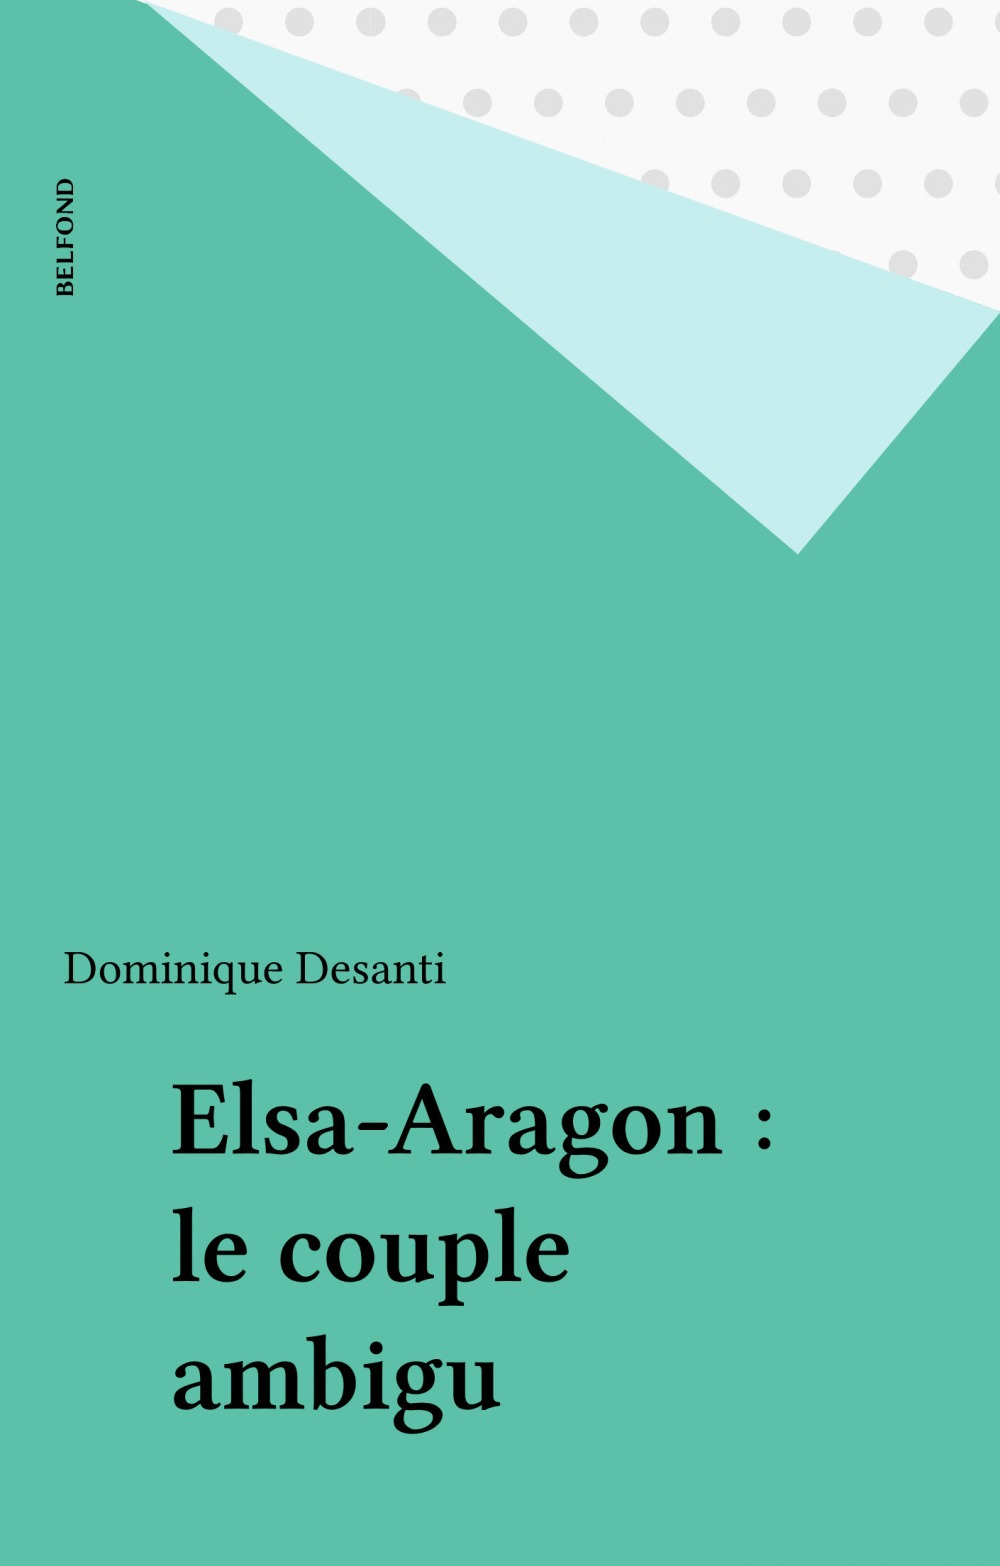 Elsa-aragon le couple ambigu